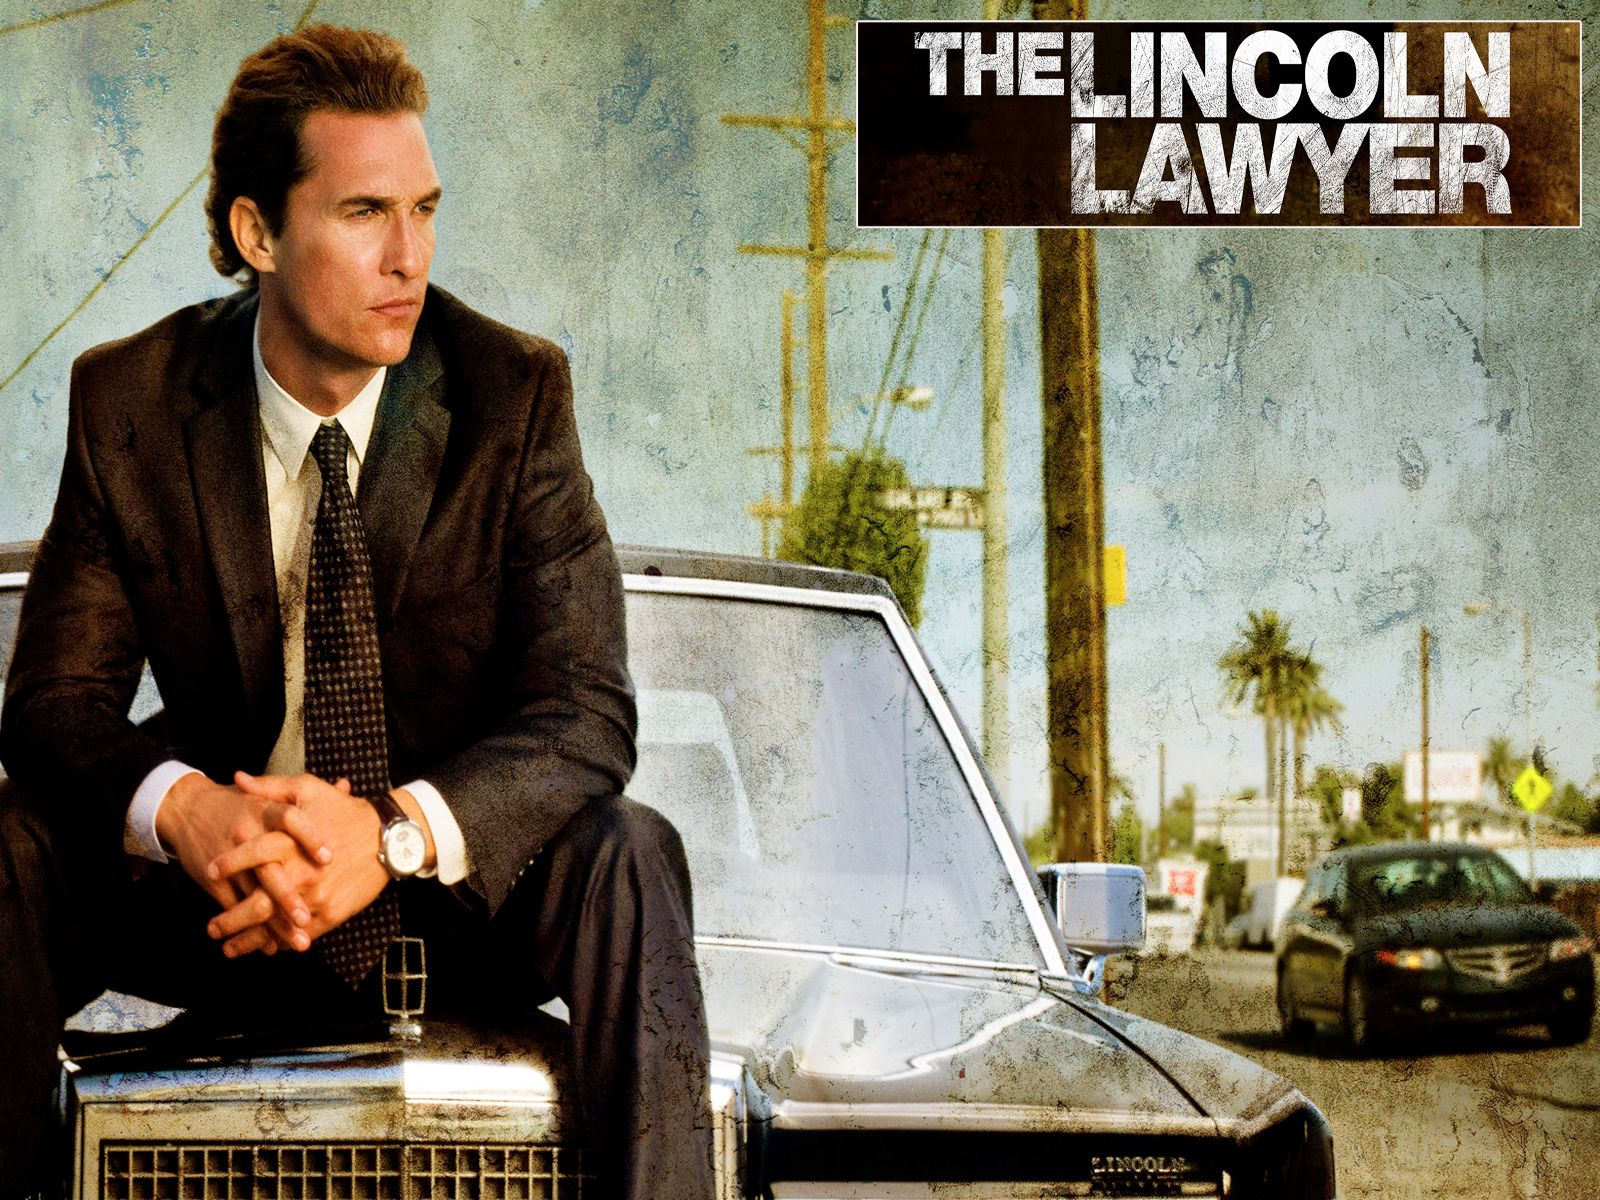 The Lincoln Lawyer Wallpaper Picswallpapercom